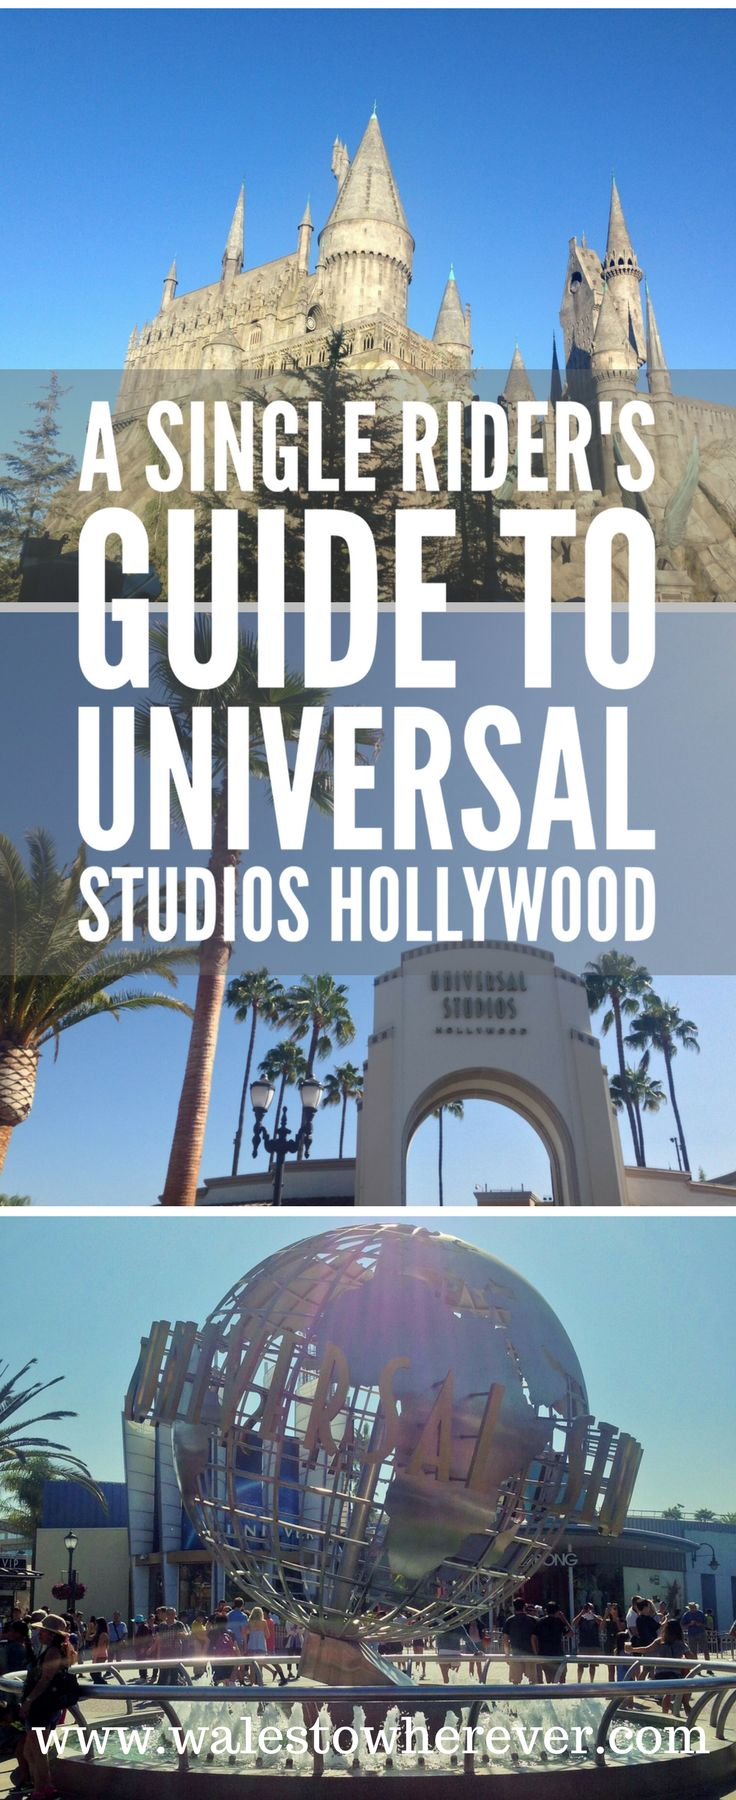 The Best Part About Going to Universal Studios Alone  Going to a theme park alone needn't be intimidating. If you have plans to head to Universal Studios Hollywood alone, prepare yourself to have the time of your life and take full advantage of single rider lines.